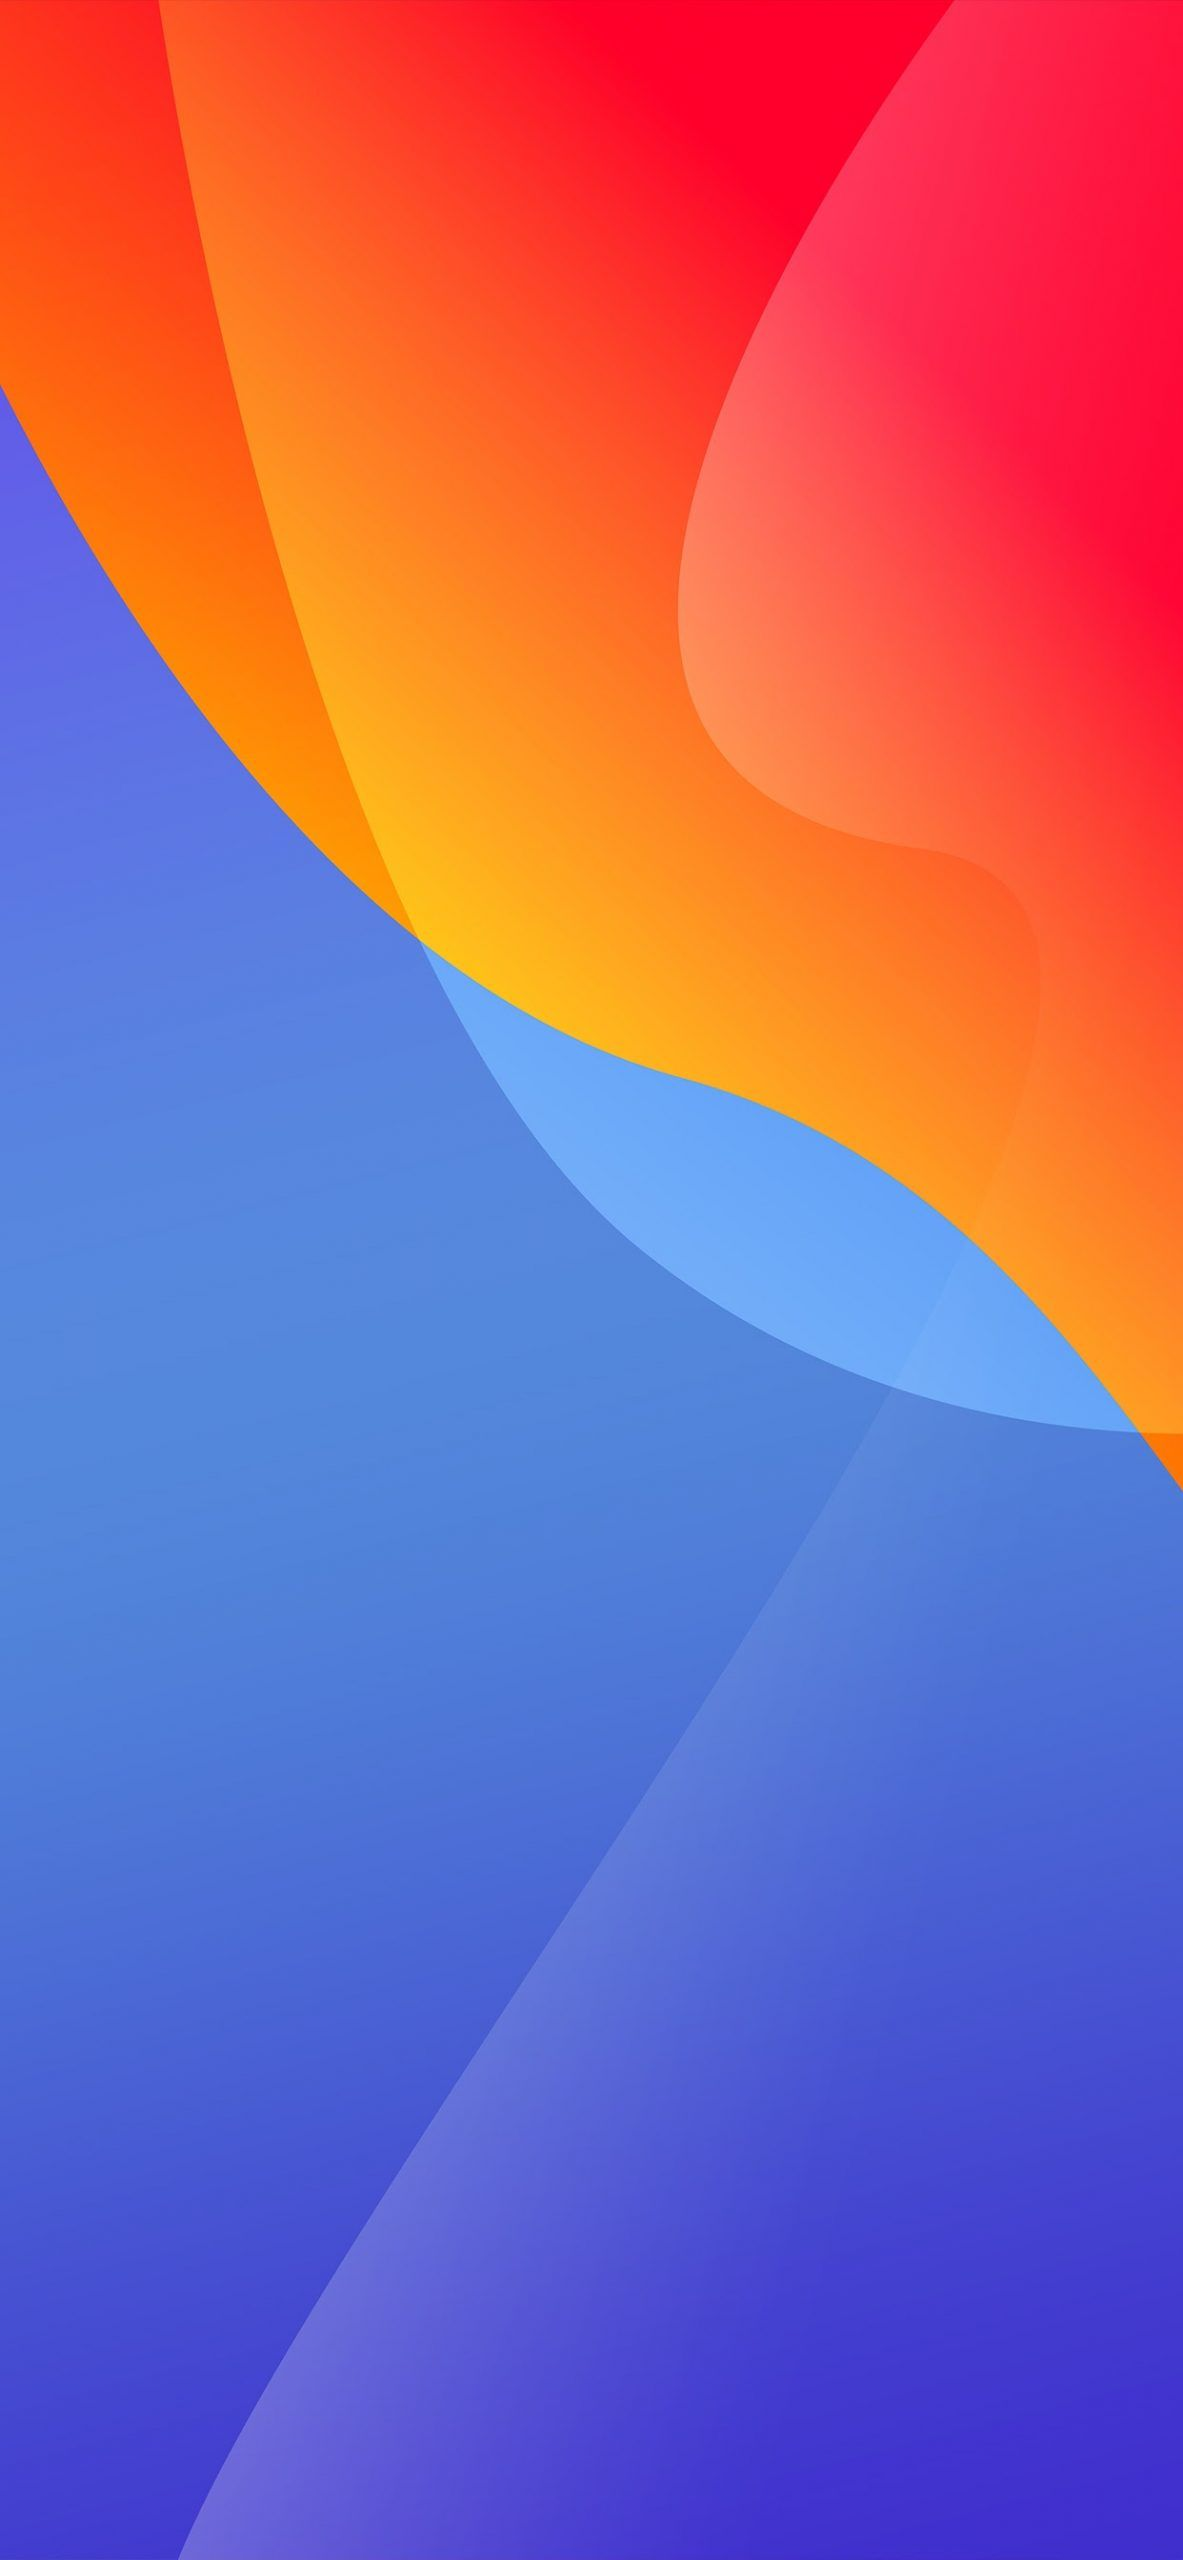 Blue To Orange New Gradient By Hk3ton On Twitter Color Wallpaper Iphone Iphone Homescreen Wallpaper Oneplus Wallpapers